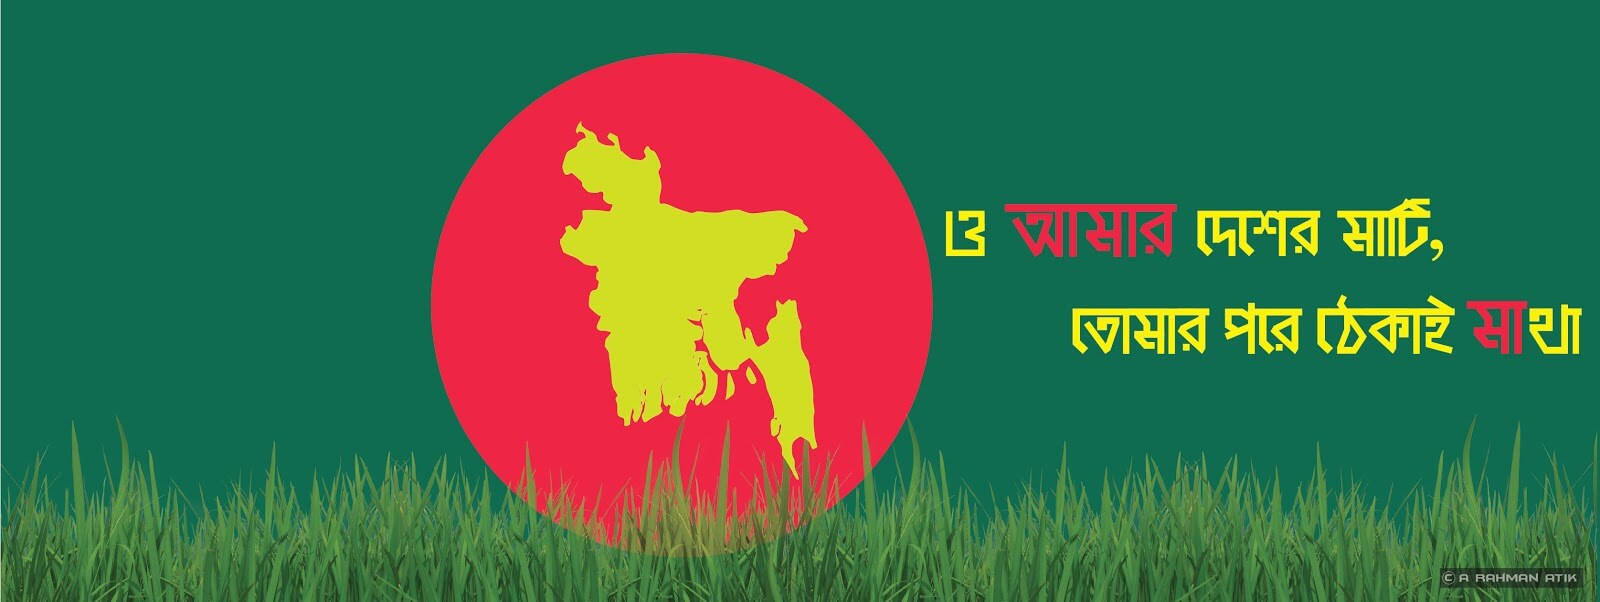 26 March the Independence Day of Bangladesh | History